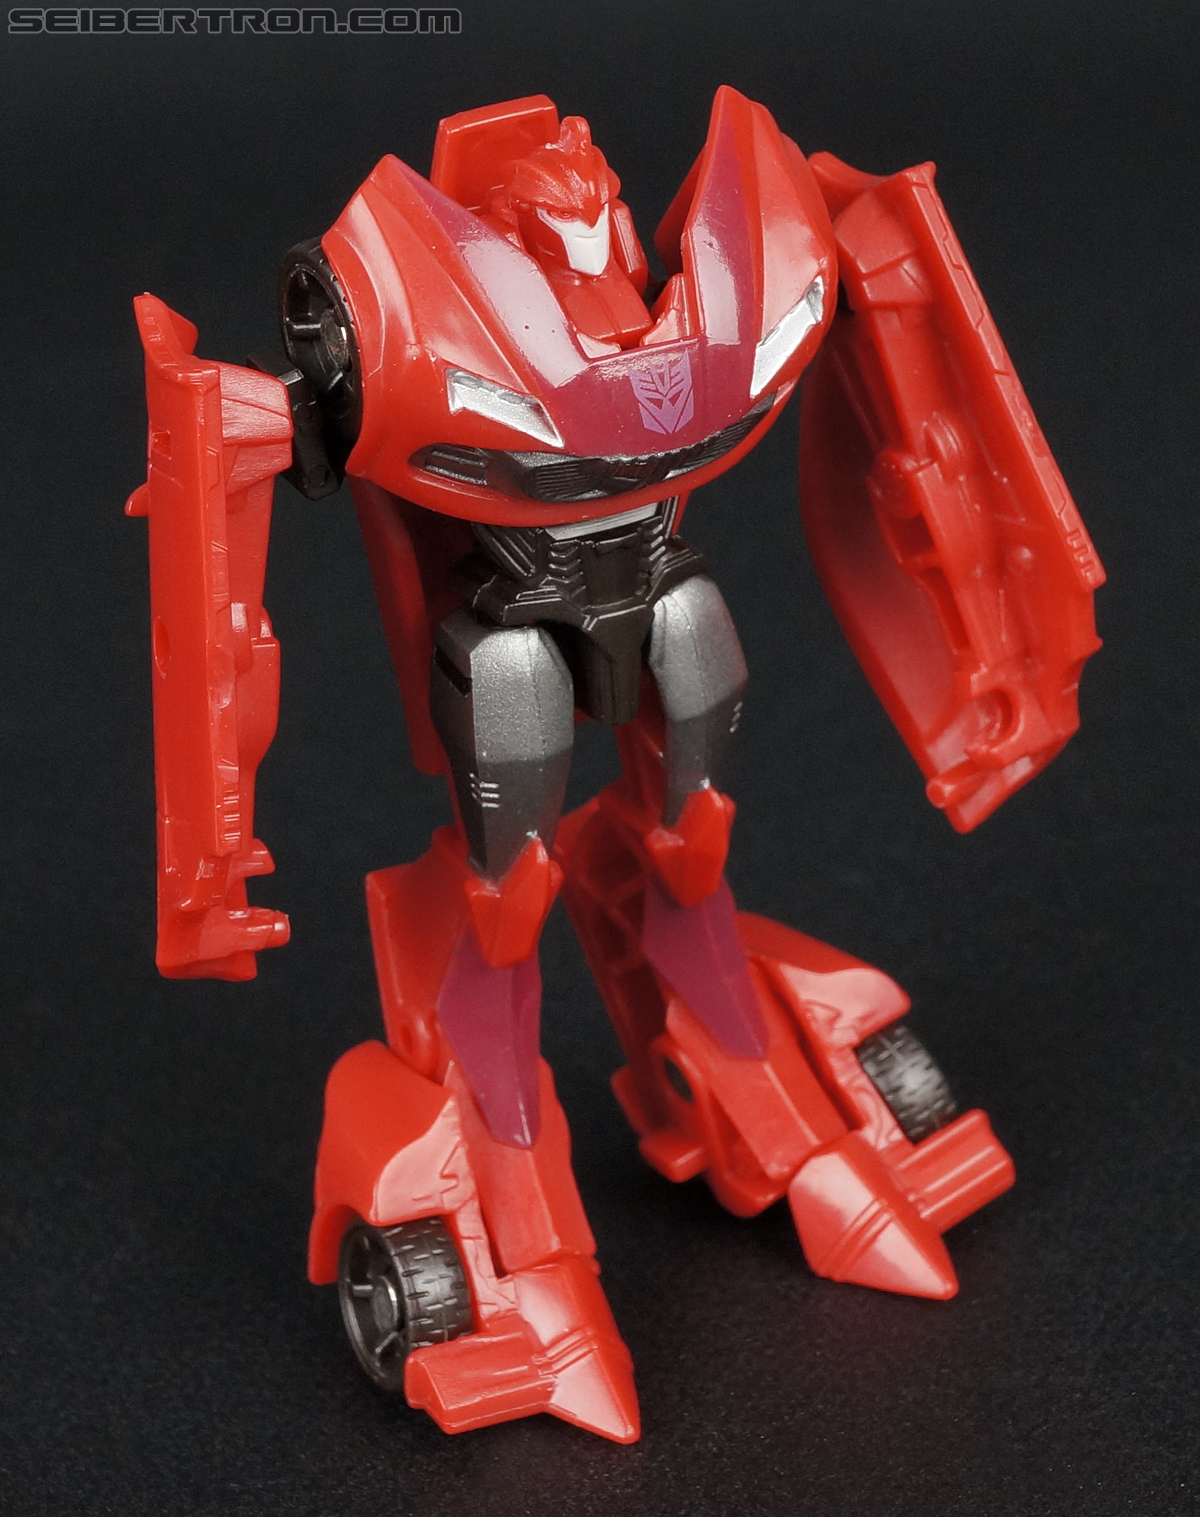 Transformers Prime: Cyberverse Knock Out (Image #76 of 146)